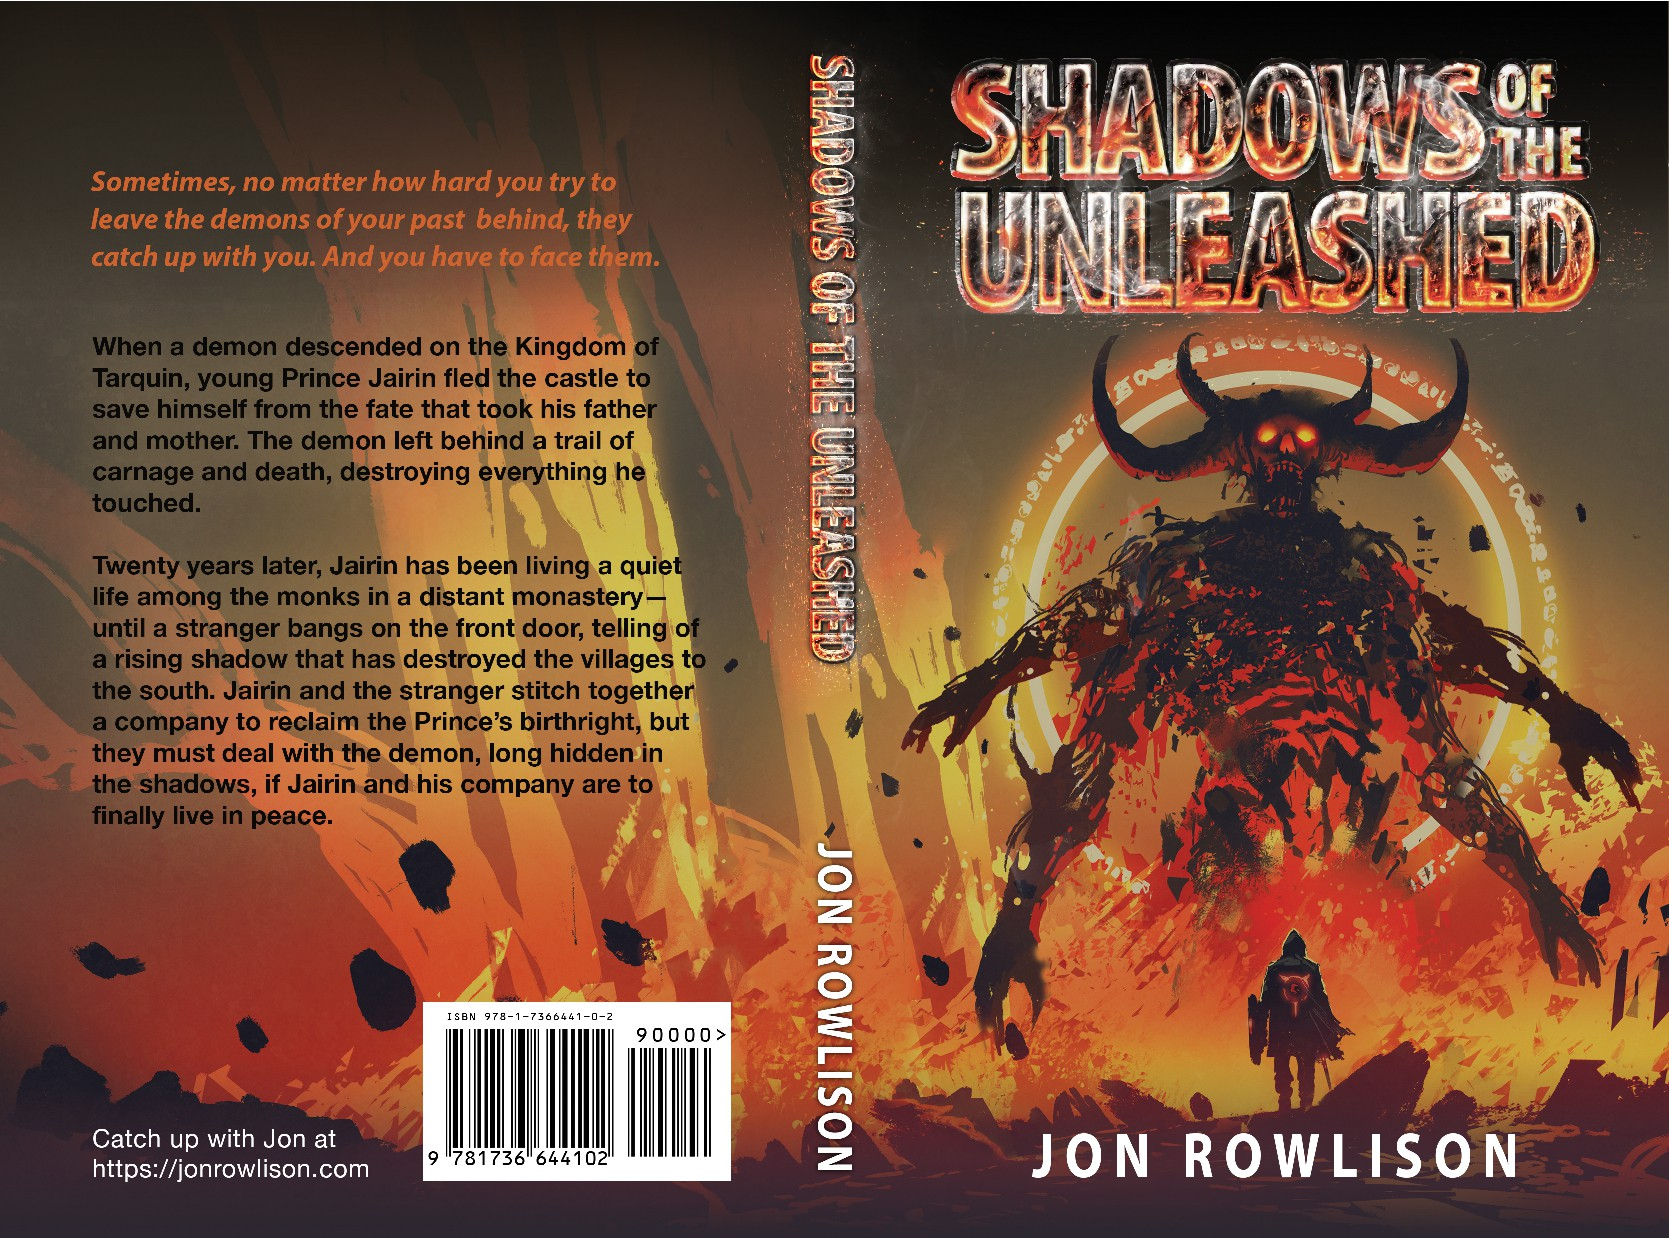 Needed - Compelling cover design for a fantasy adventure story